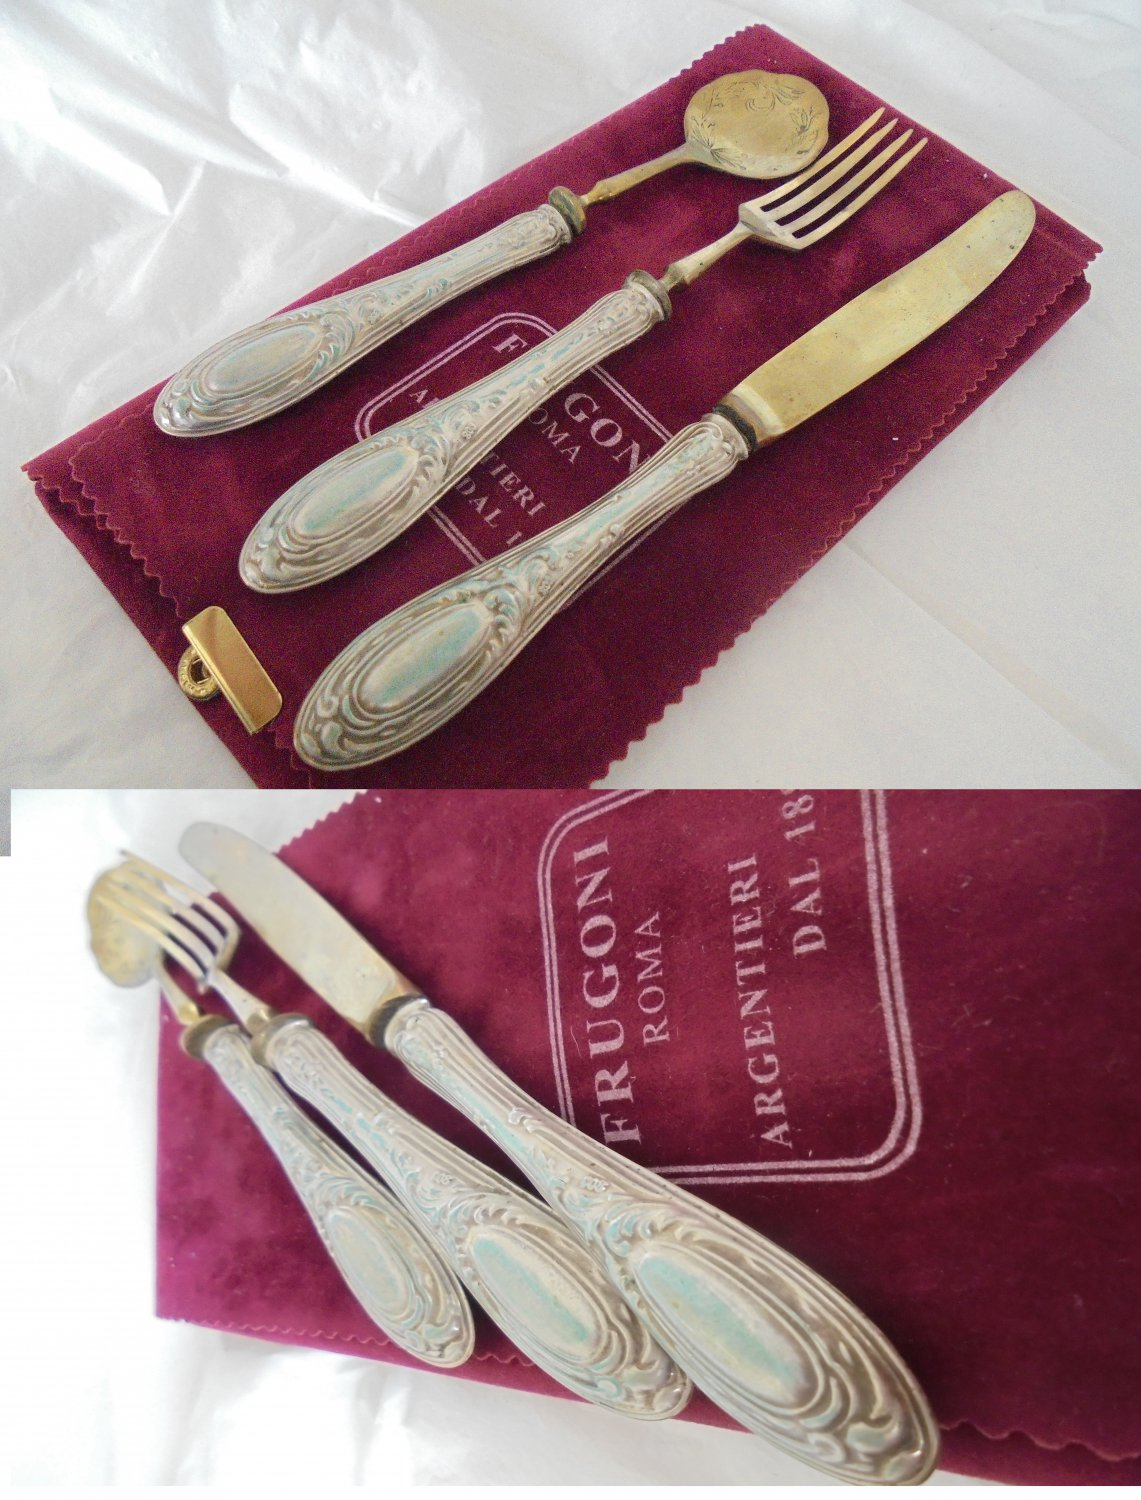 CHILD CUTLERY gift set for 1st year in SILVER 800 Spoon Fork Knife Original 1950s